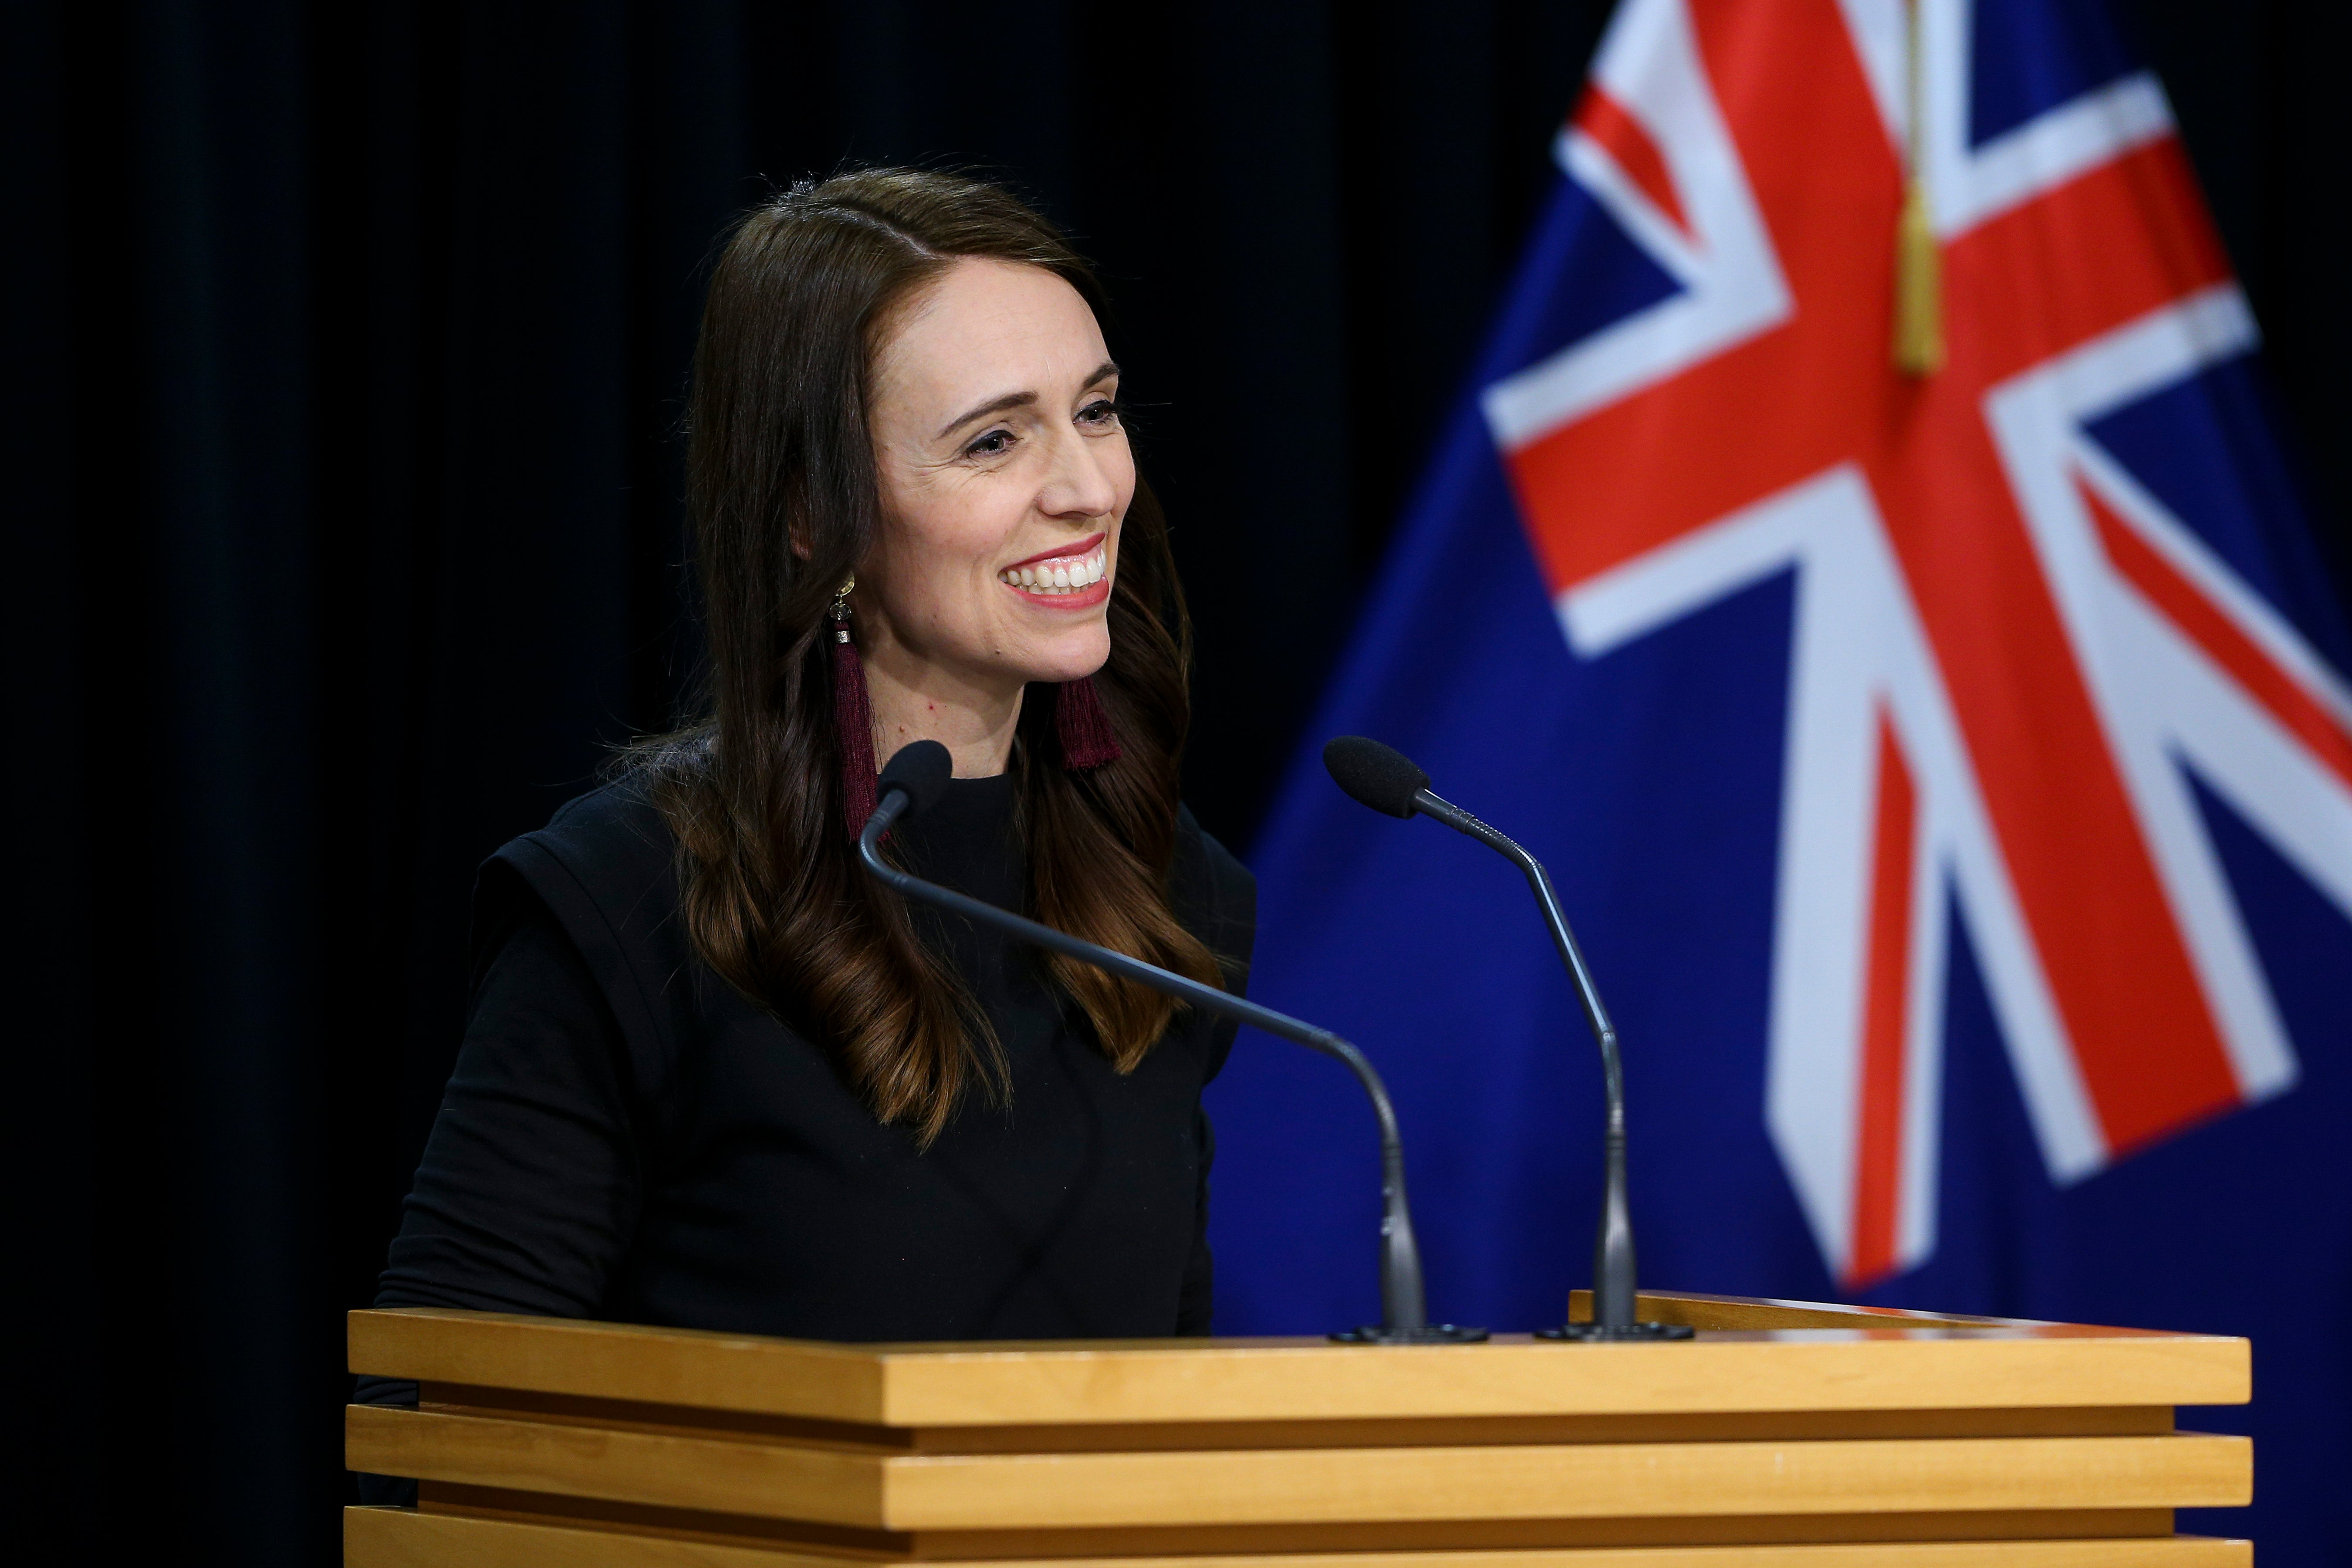 Jacinda Ardern formally declares climate emergency and commits to net-zero emissions by 2025 - independent